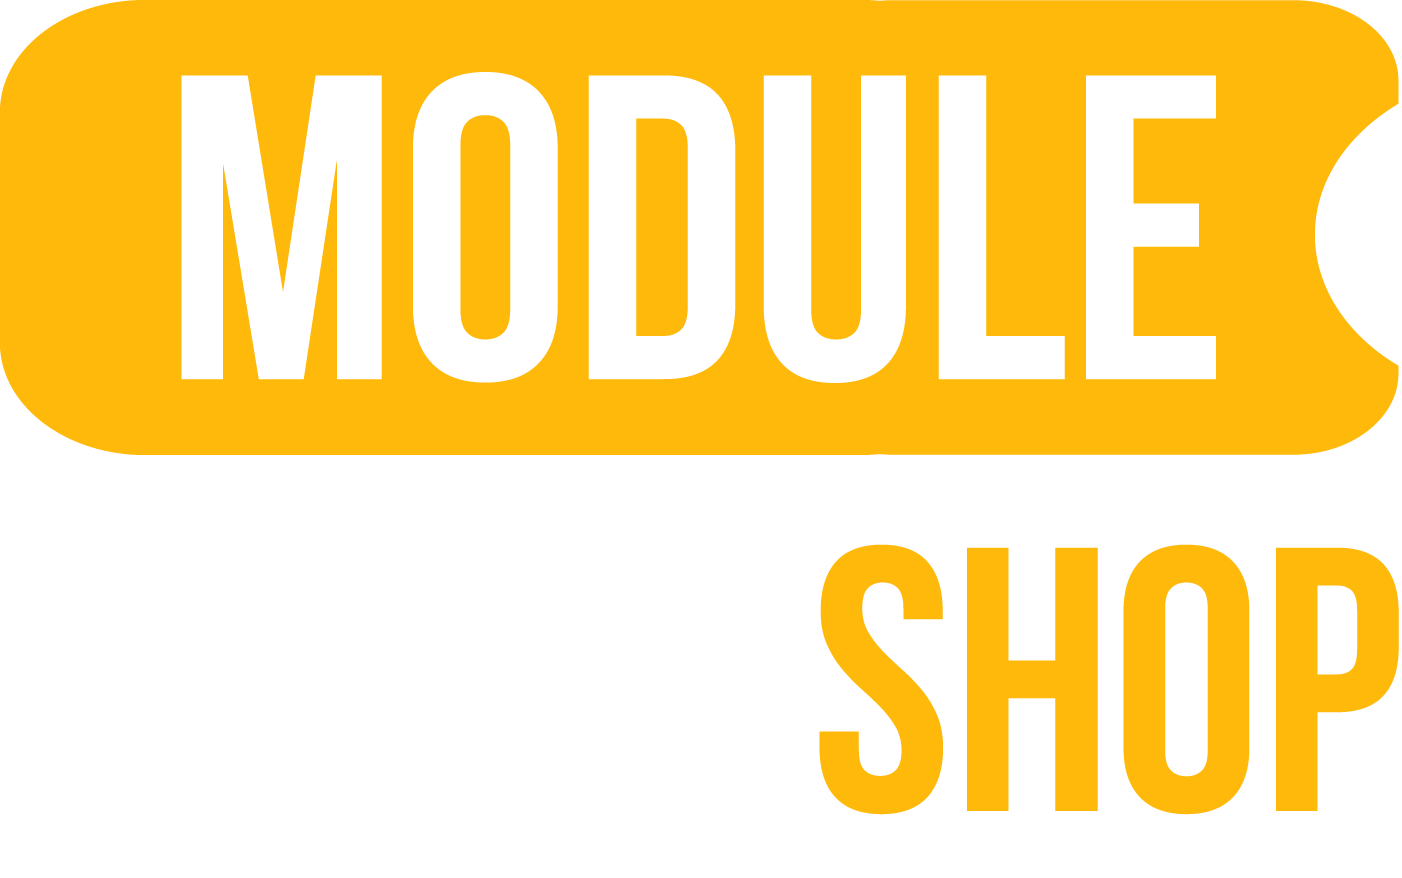 TV Module Shop logo